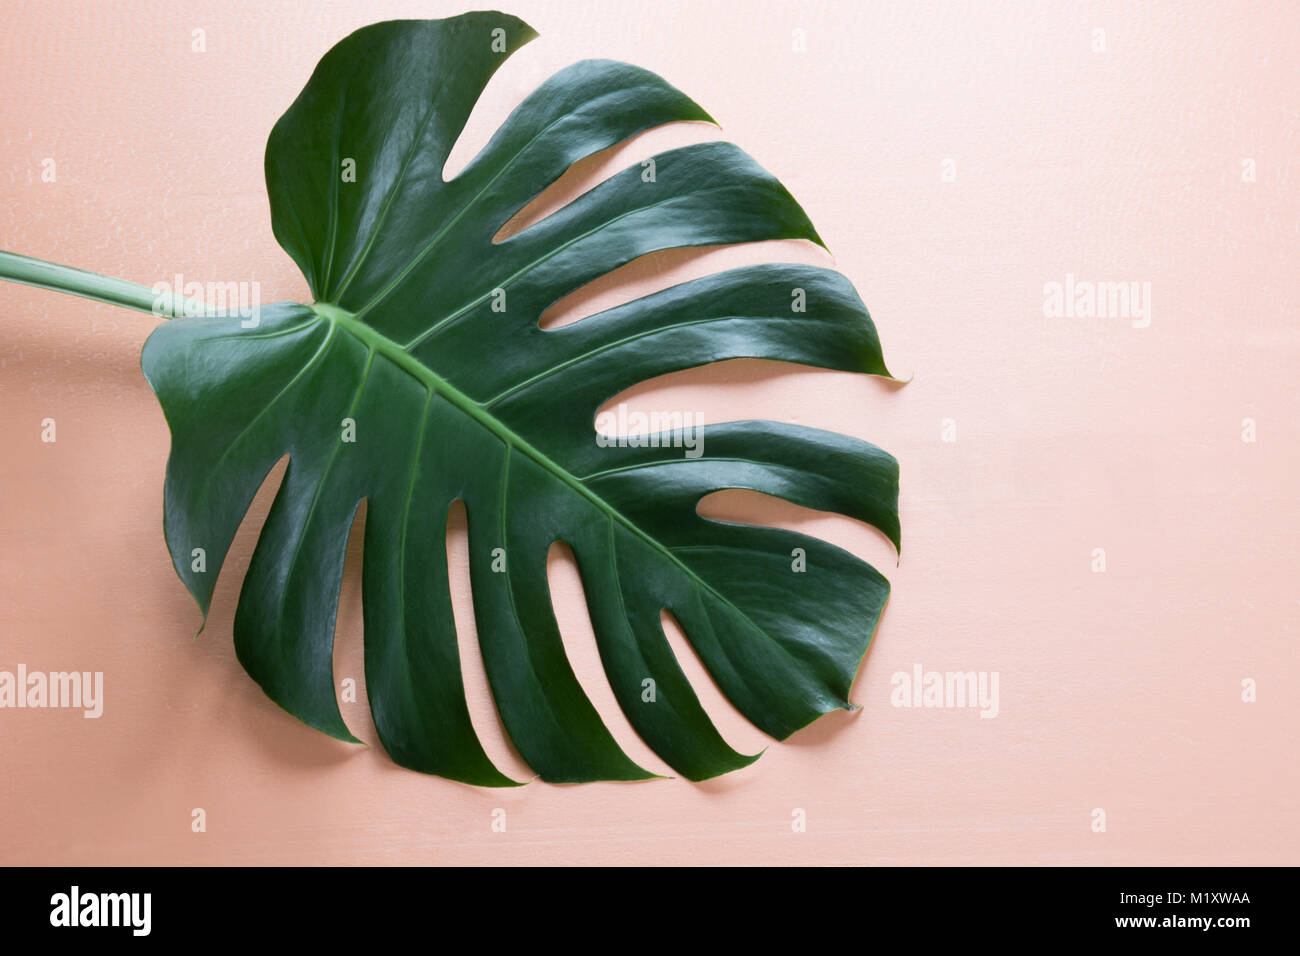 Single leaf of Monstera on pink background. Close up, isolated with copy space. - Stock Image